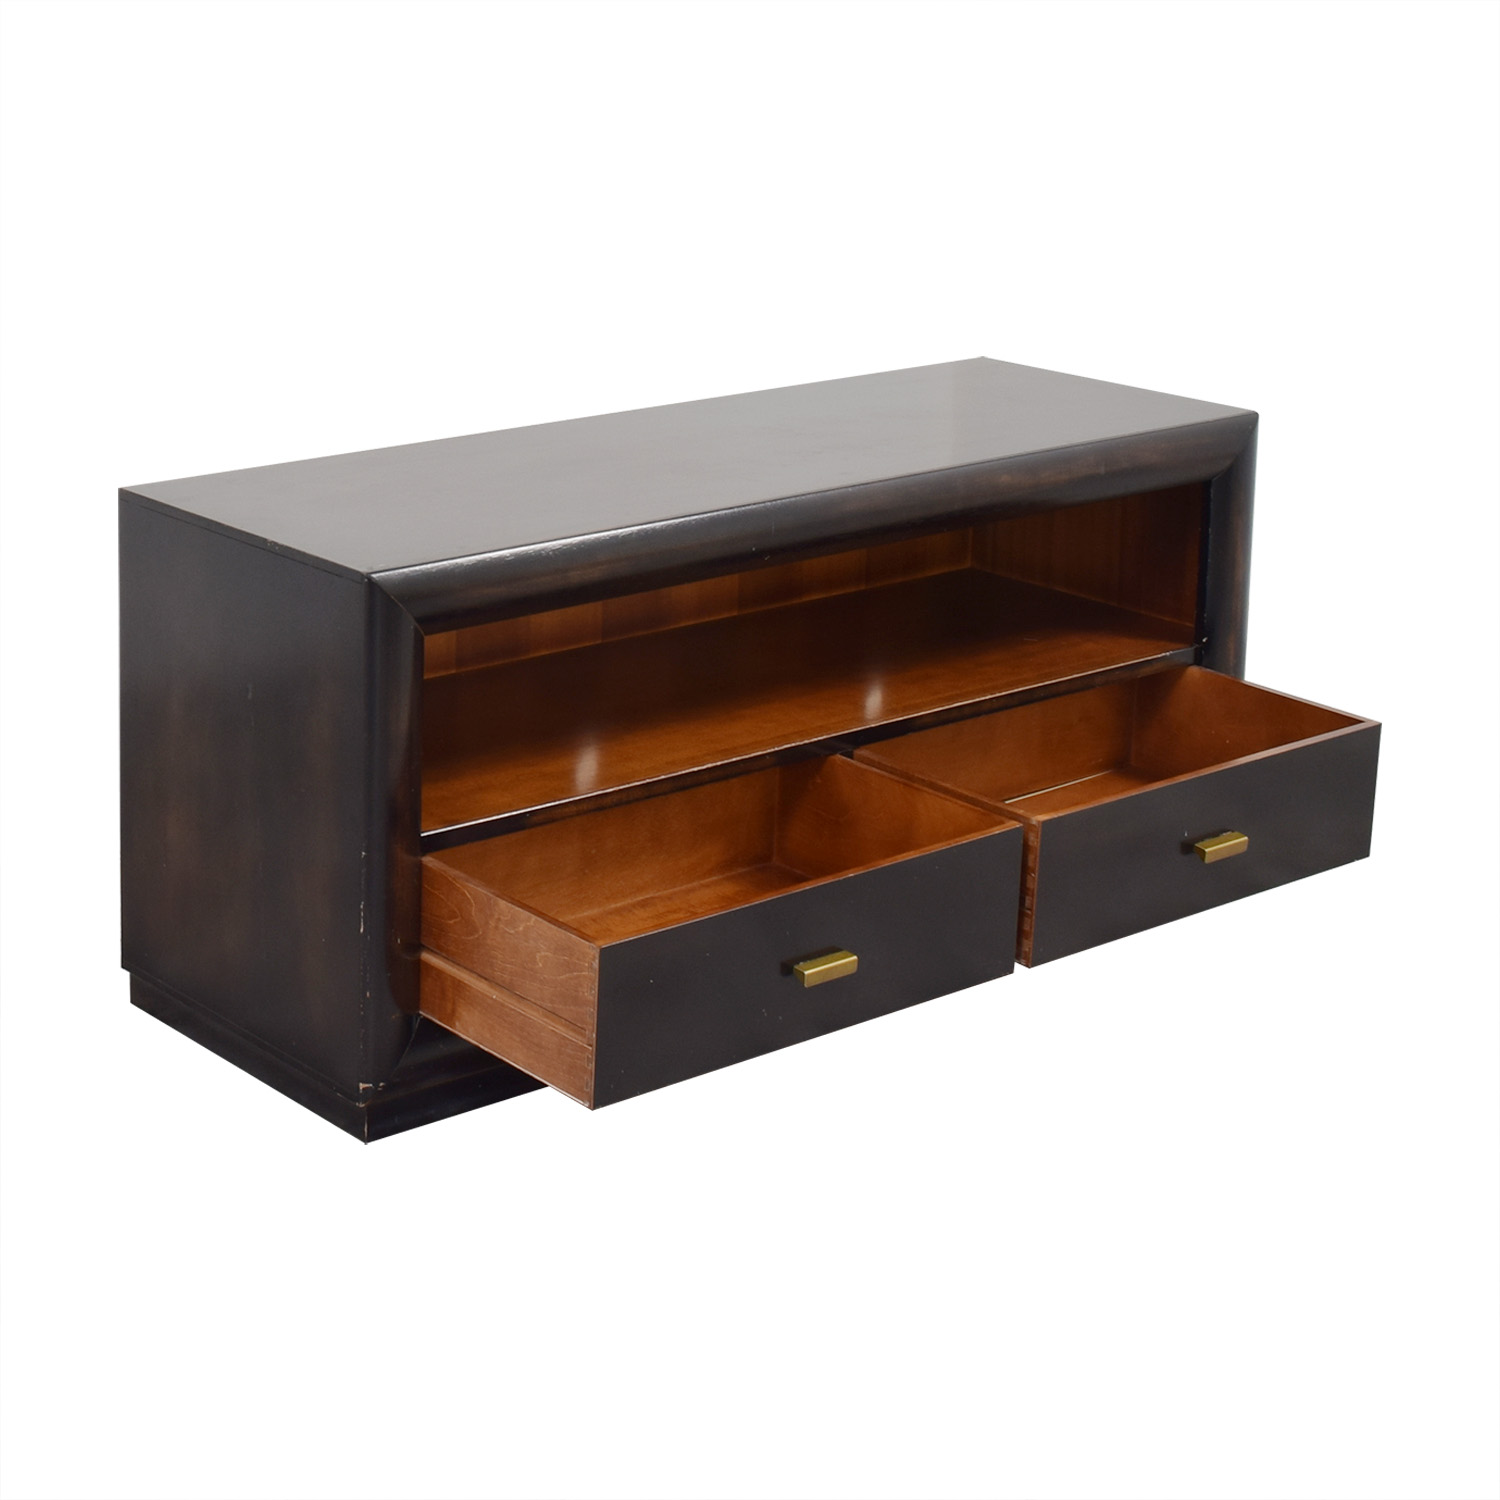 buy Crate & Barrel Italian Media Center Crate & Barrel